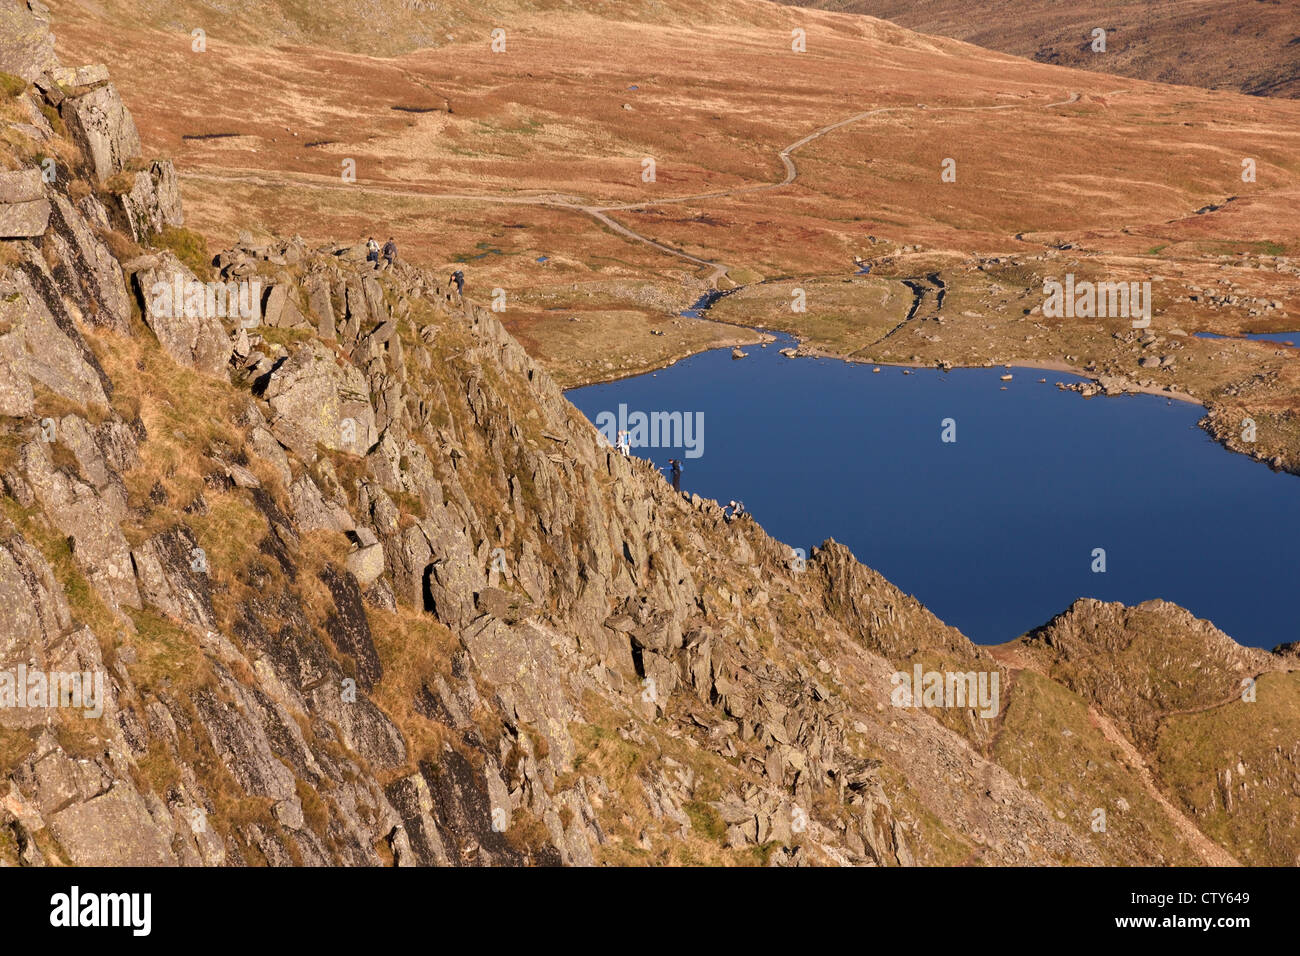 Hill walkers ascending Helvellyn from Striding Edge, Helvellyn, Lake District, Cumbria, England, UK - Stock Image